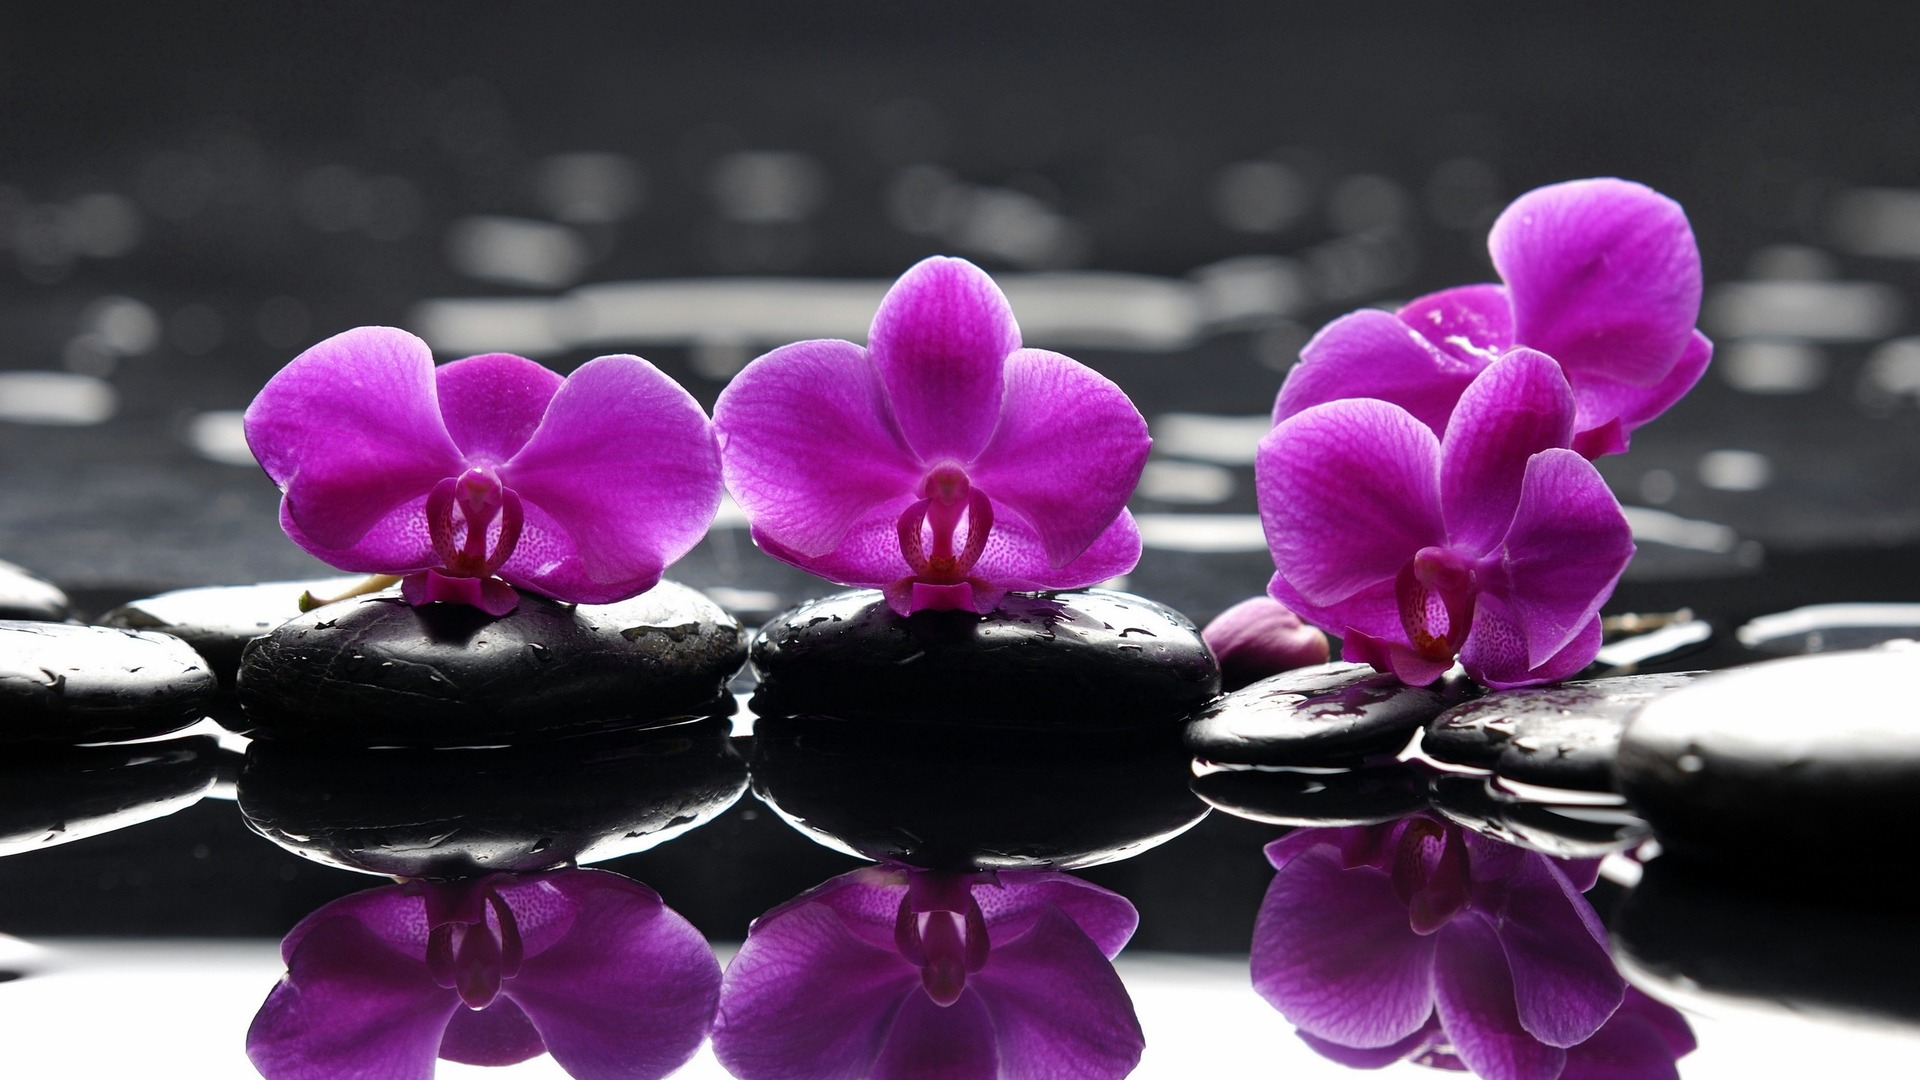 Purple Orchids 1920×1080 Flower Wallpaper   #1225 Wallpaper